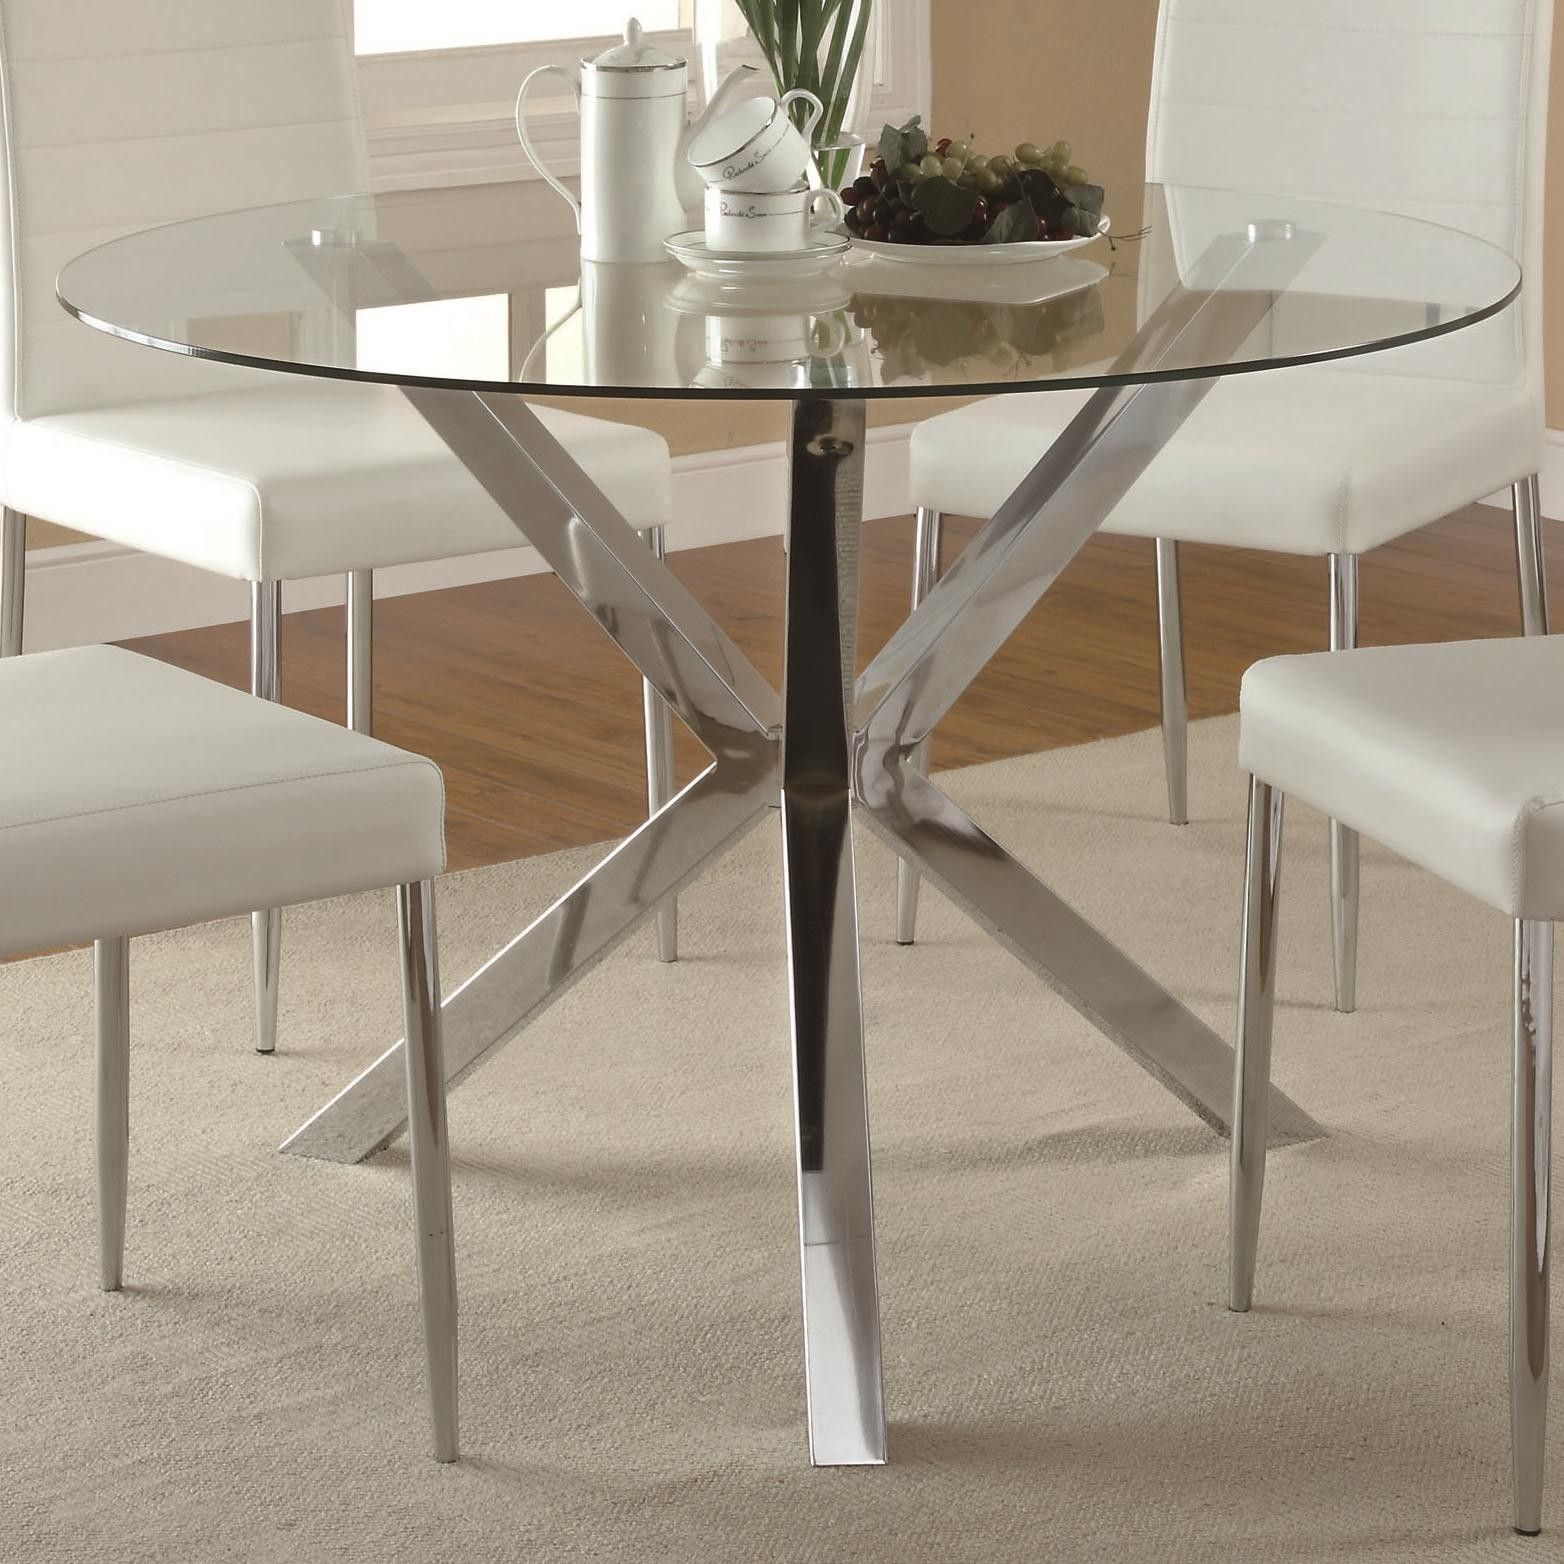 Coaster vance contemporary glass top dining table with for Cool modern dining tables